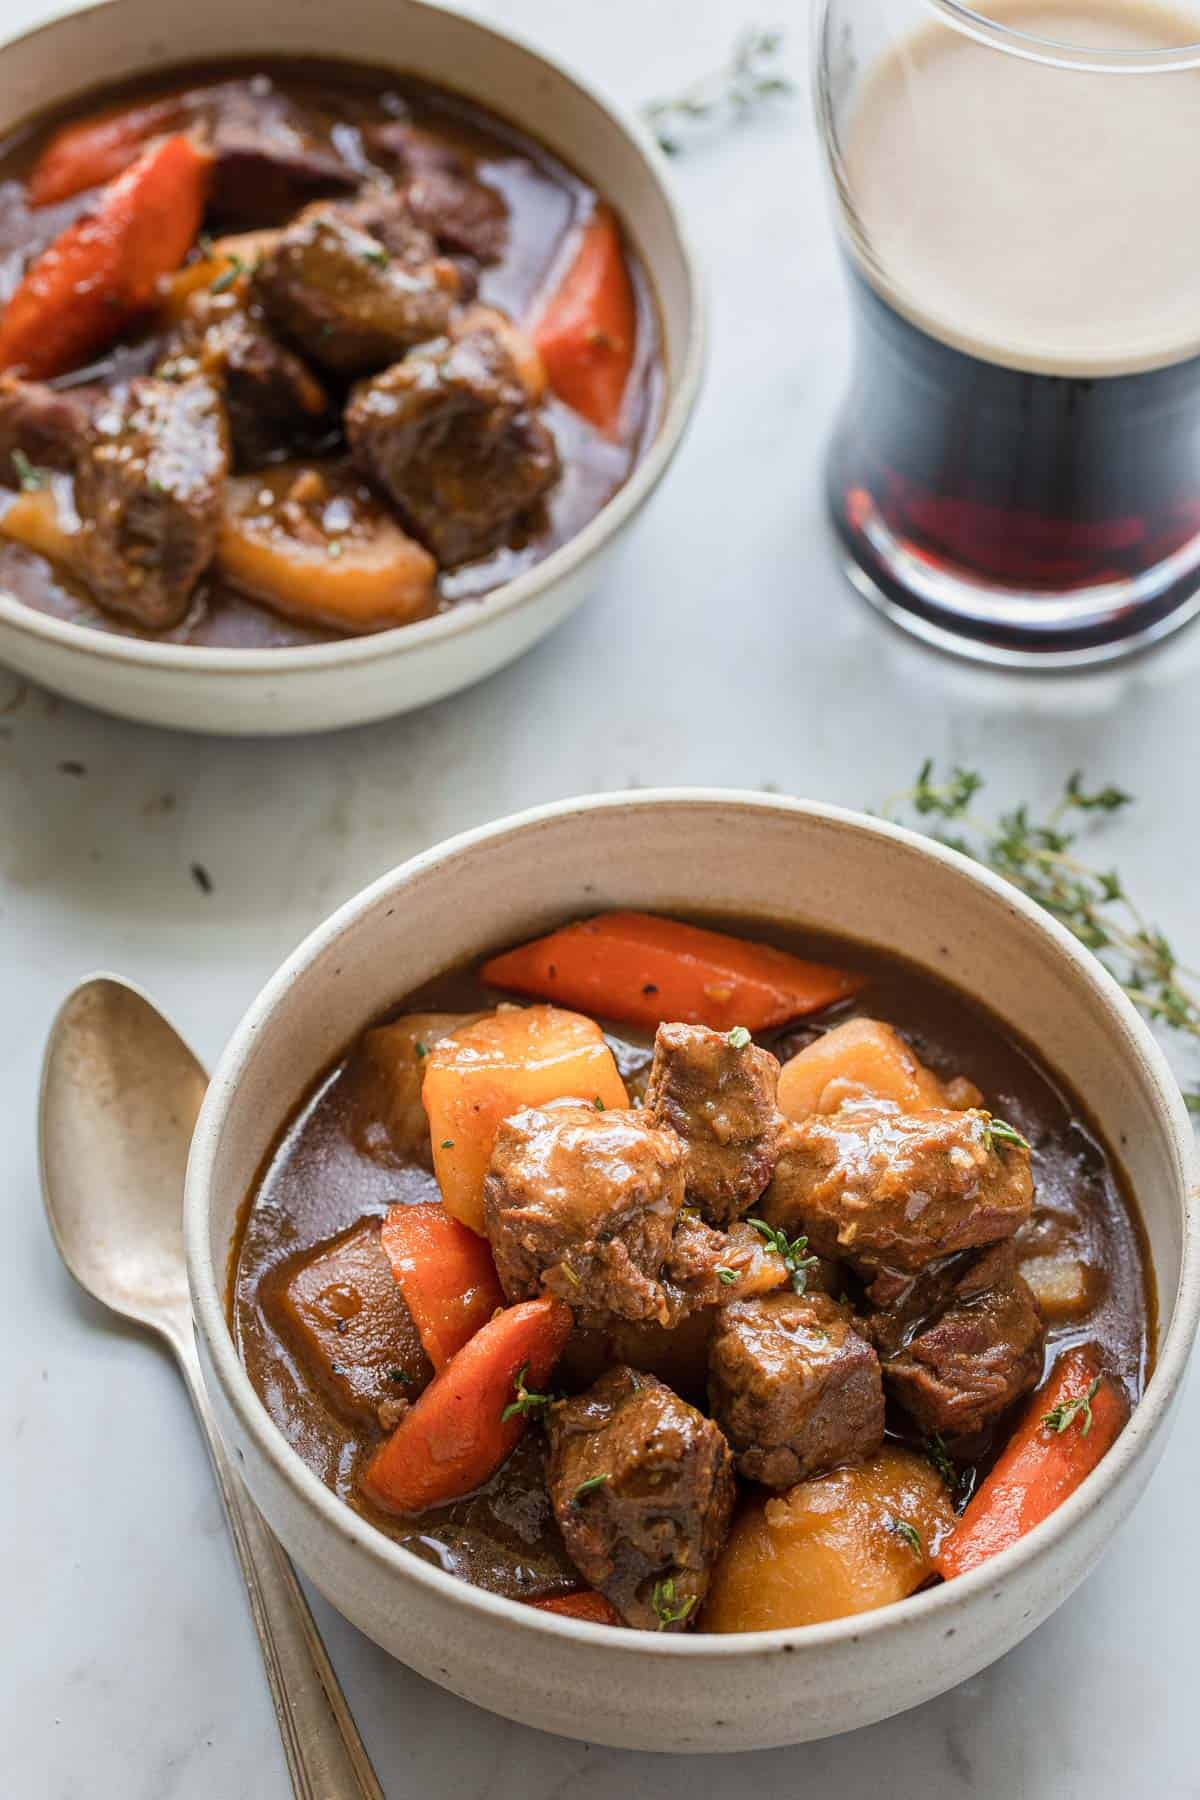 bowl of beef stew with a glass of dark beer in the background